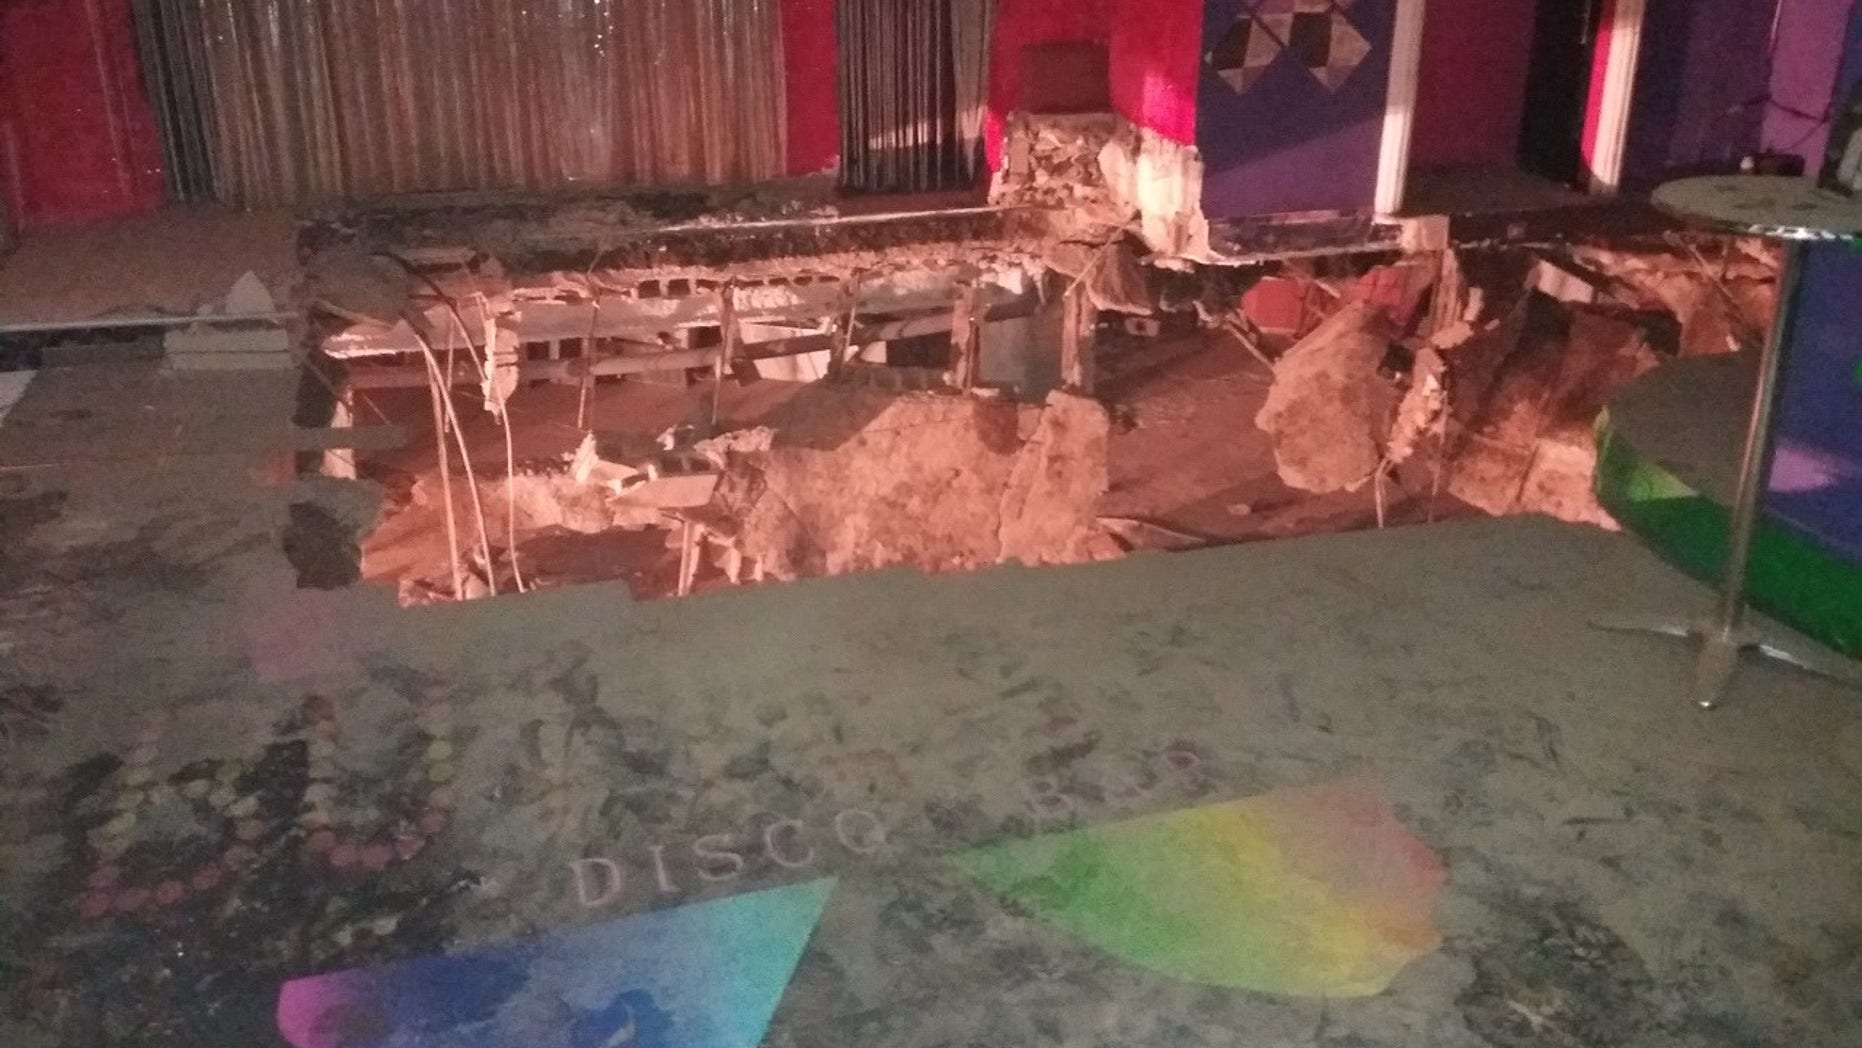 Twenty-two people were injured when the dancefloor of a nightclub in Tenerife collapsed early Sunday morning.